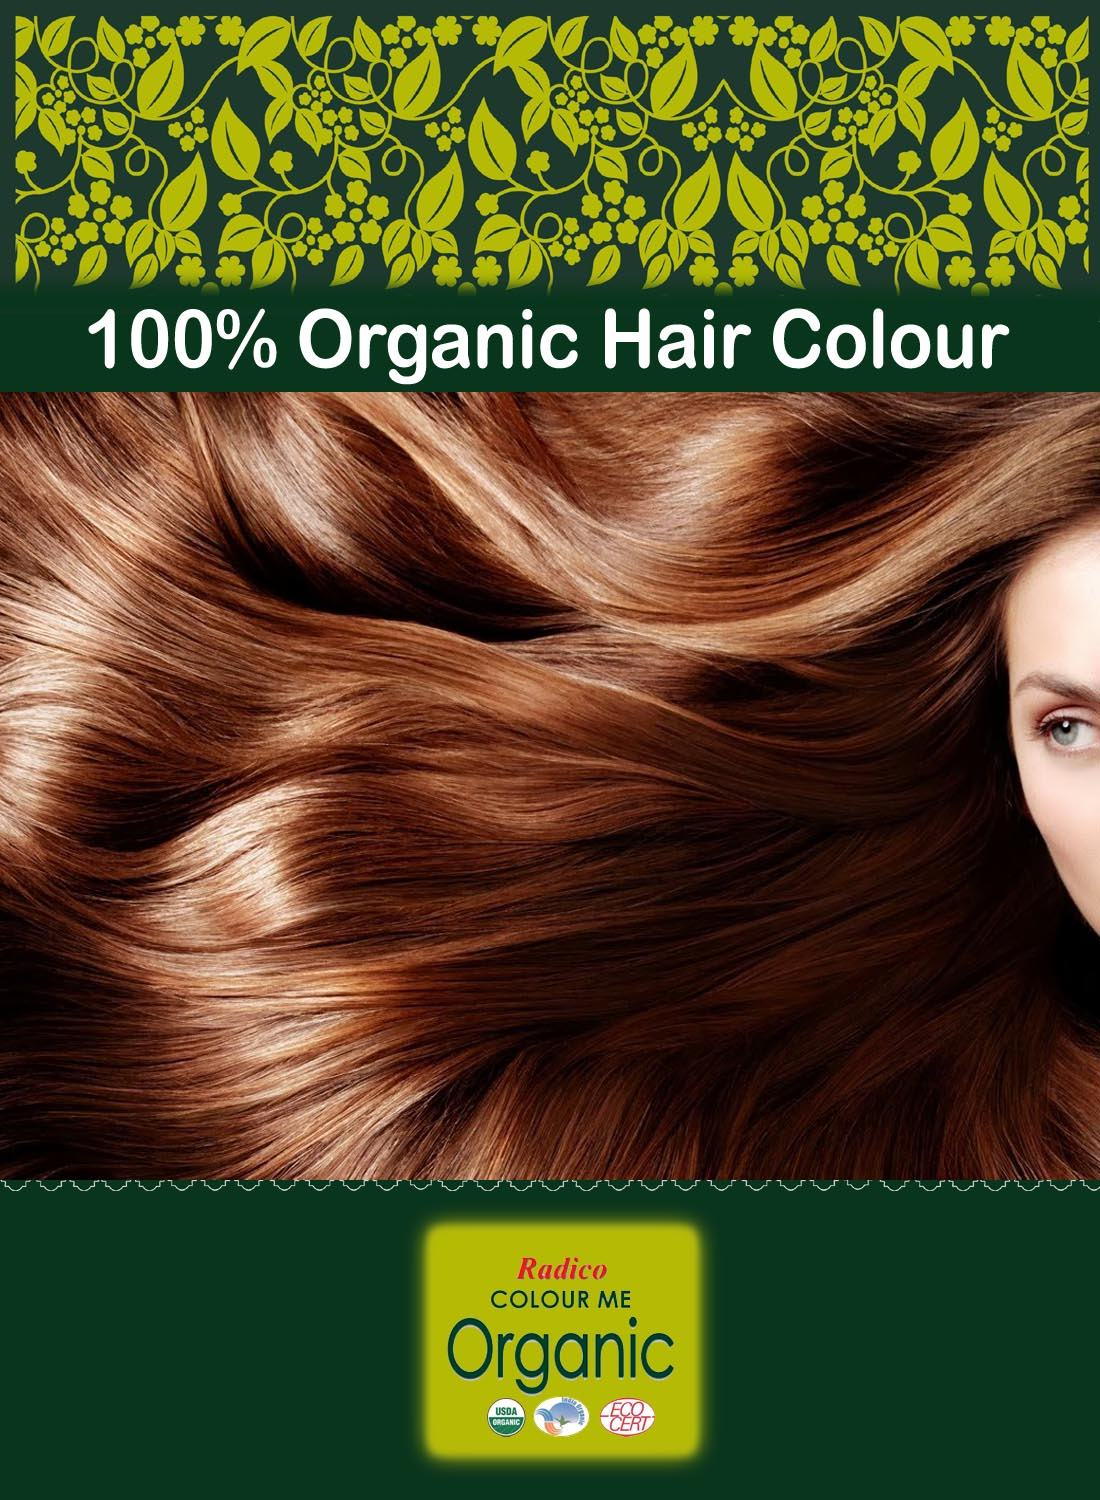 Biolage Hair Color